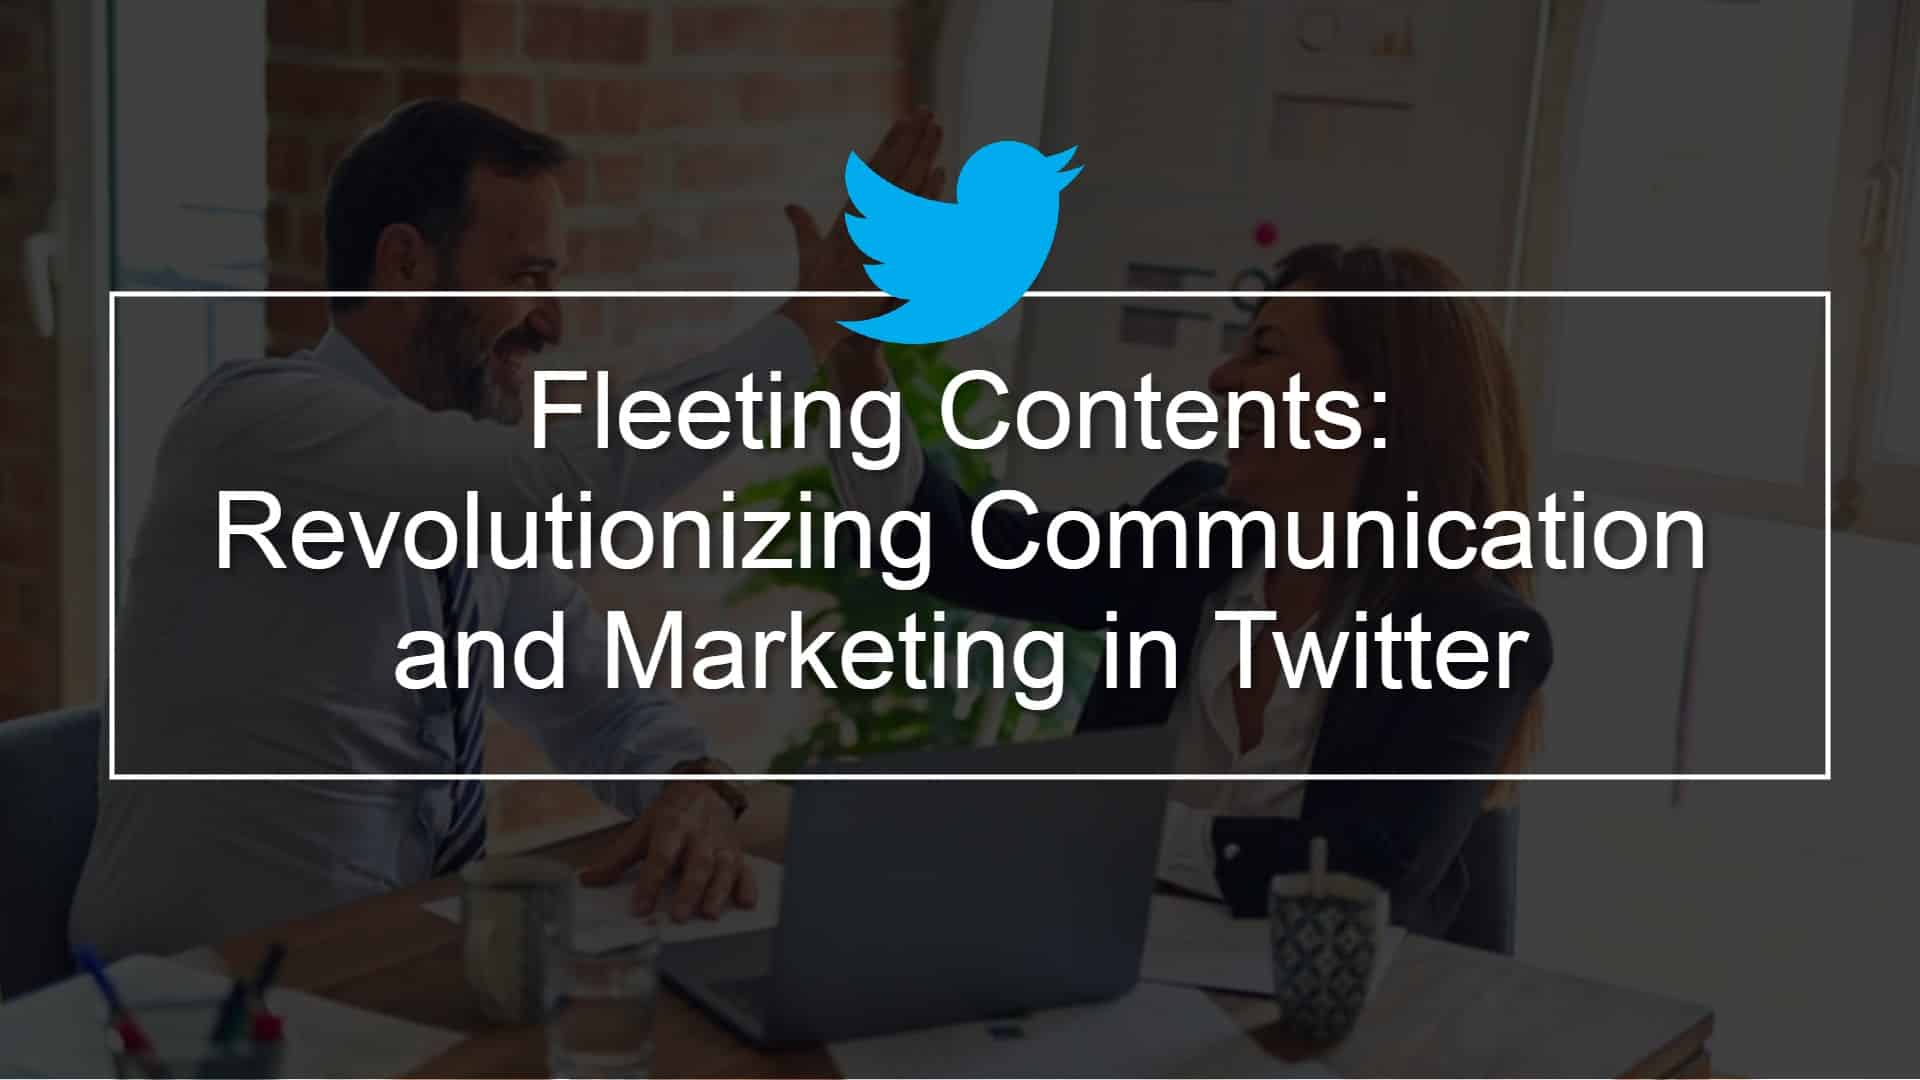 Fleeting Contents: Revolutionizing Communication and Marketing in Twitter